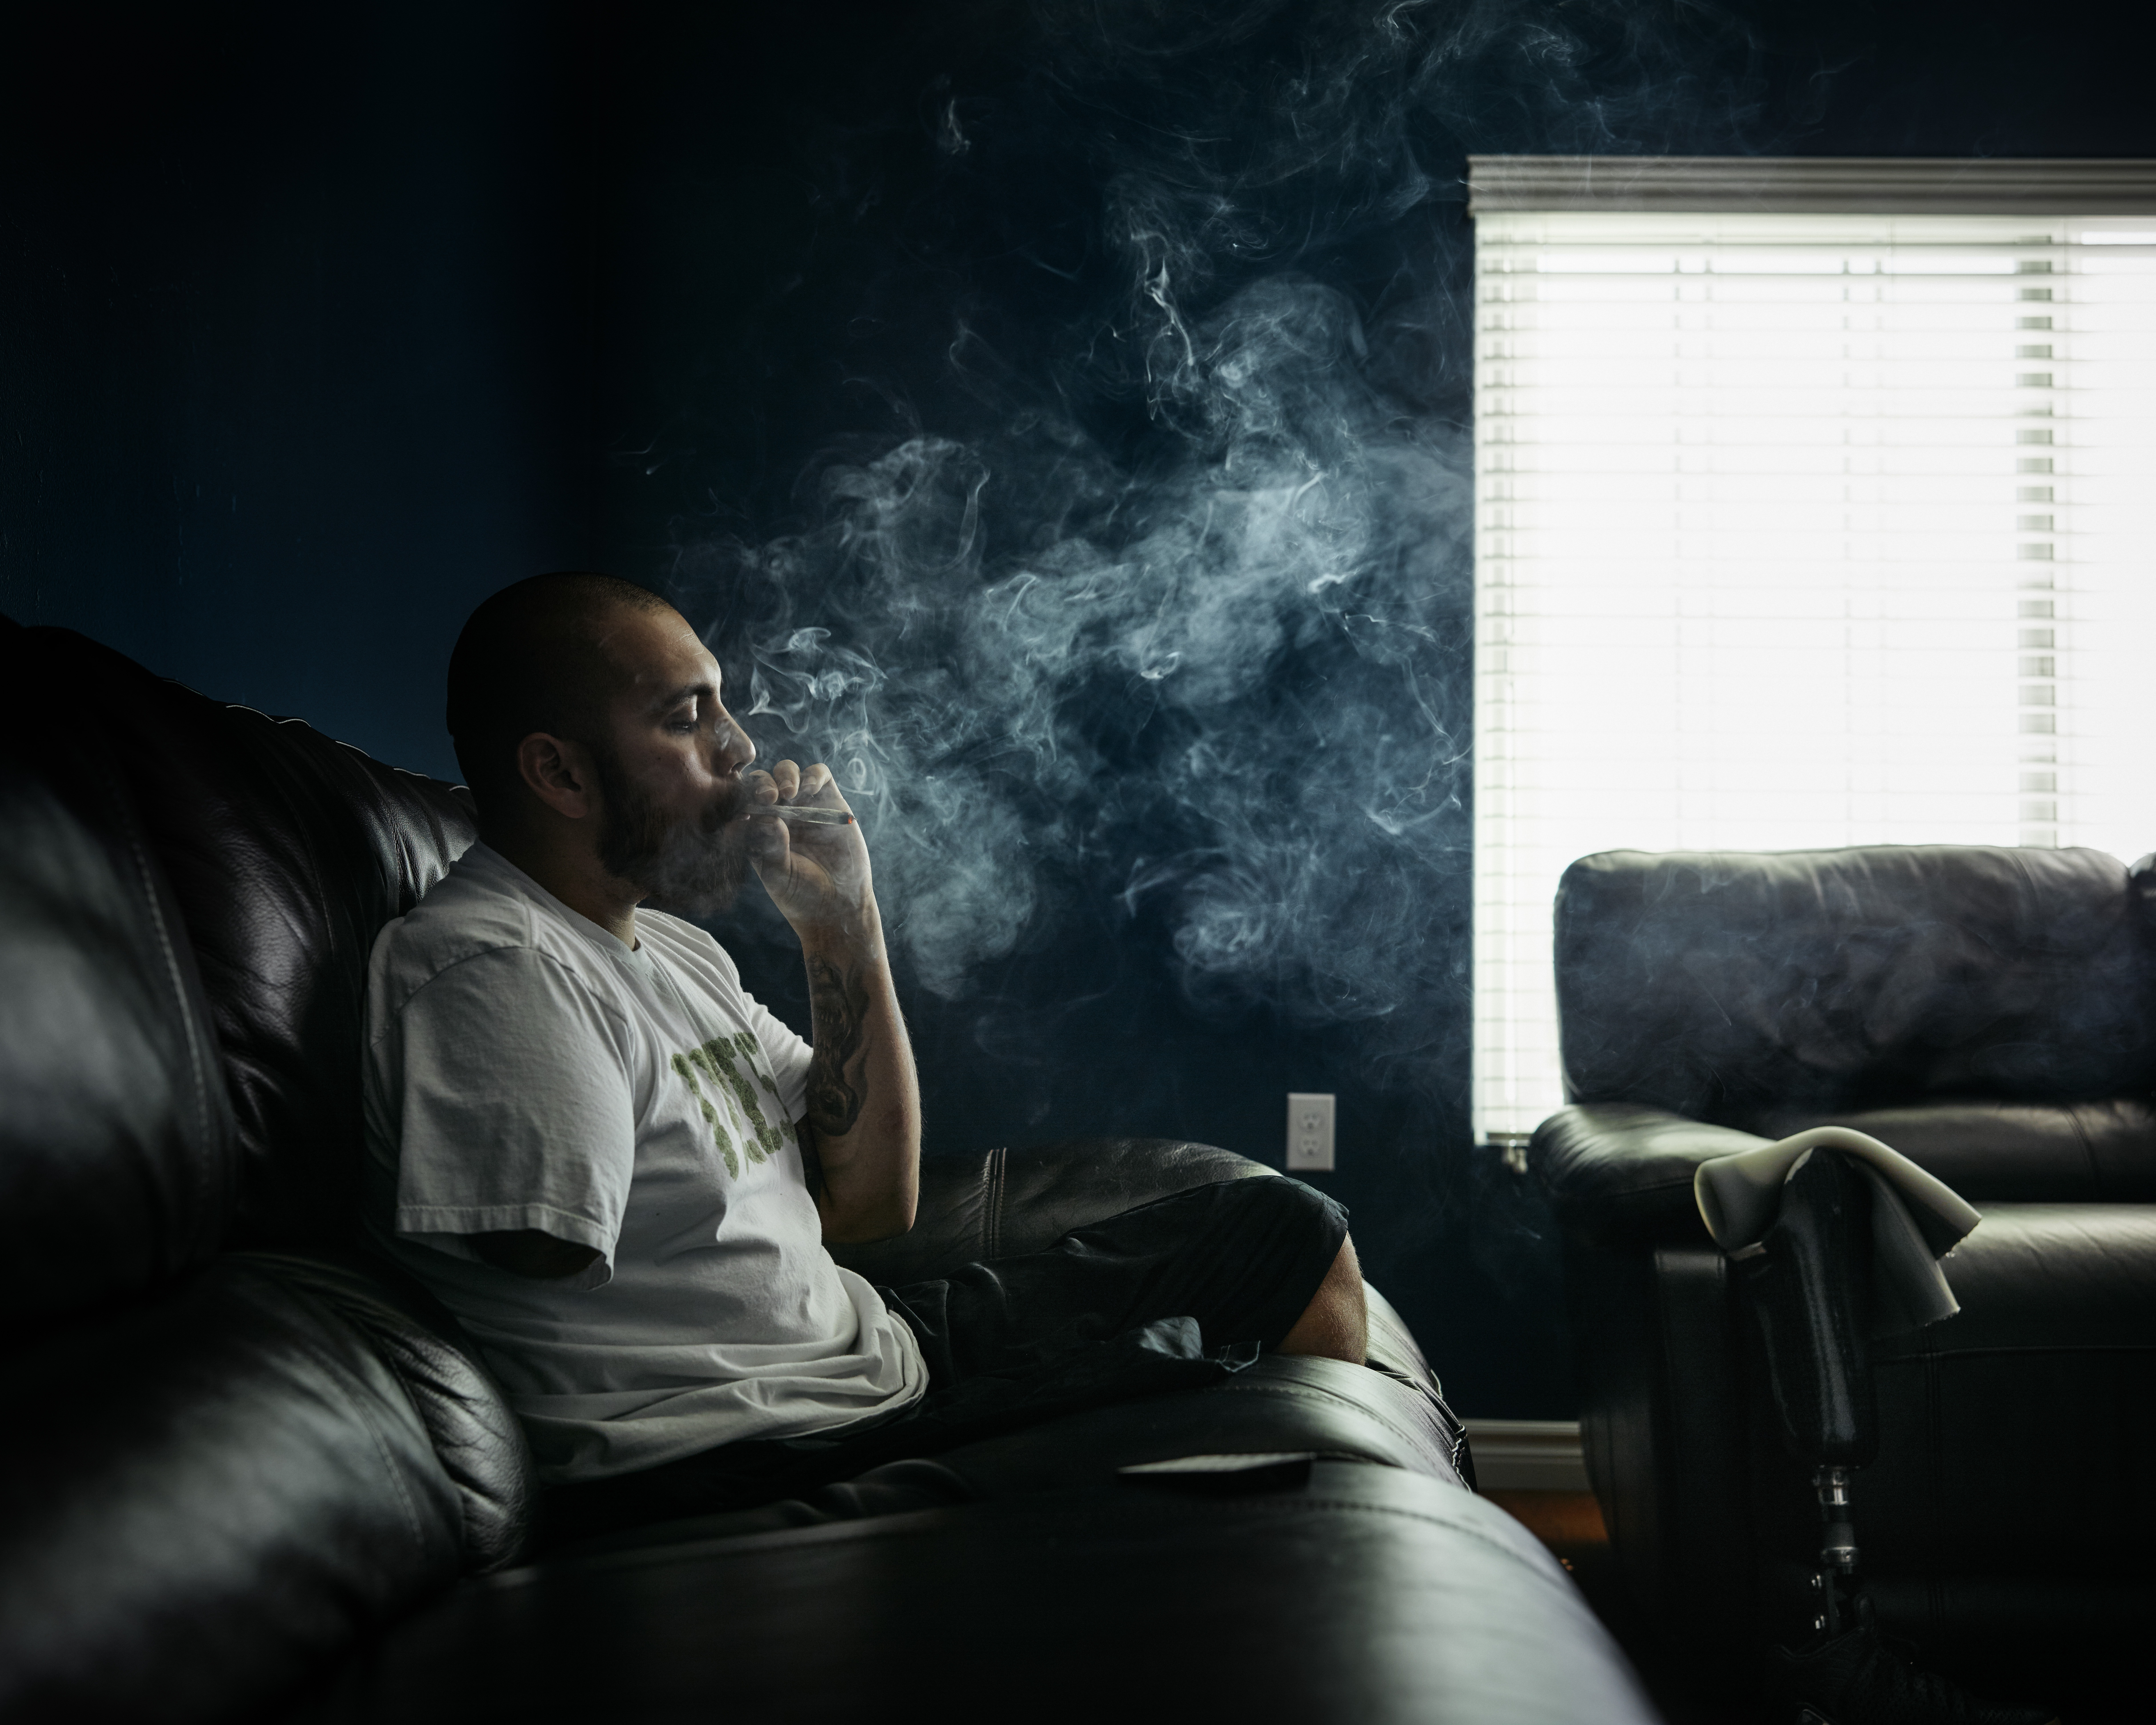 Army veteran                               Jose Martinez smokes marijuana in his California home. He says it eases the PTSD and pain from his 2012 trauma in Afghanistan.From  Post-Traumatic Marijuana.  Aug. 29, 2016 issue.